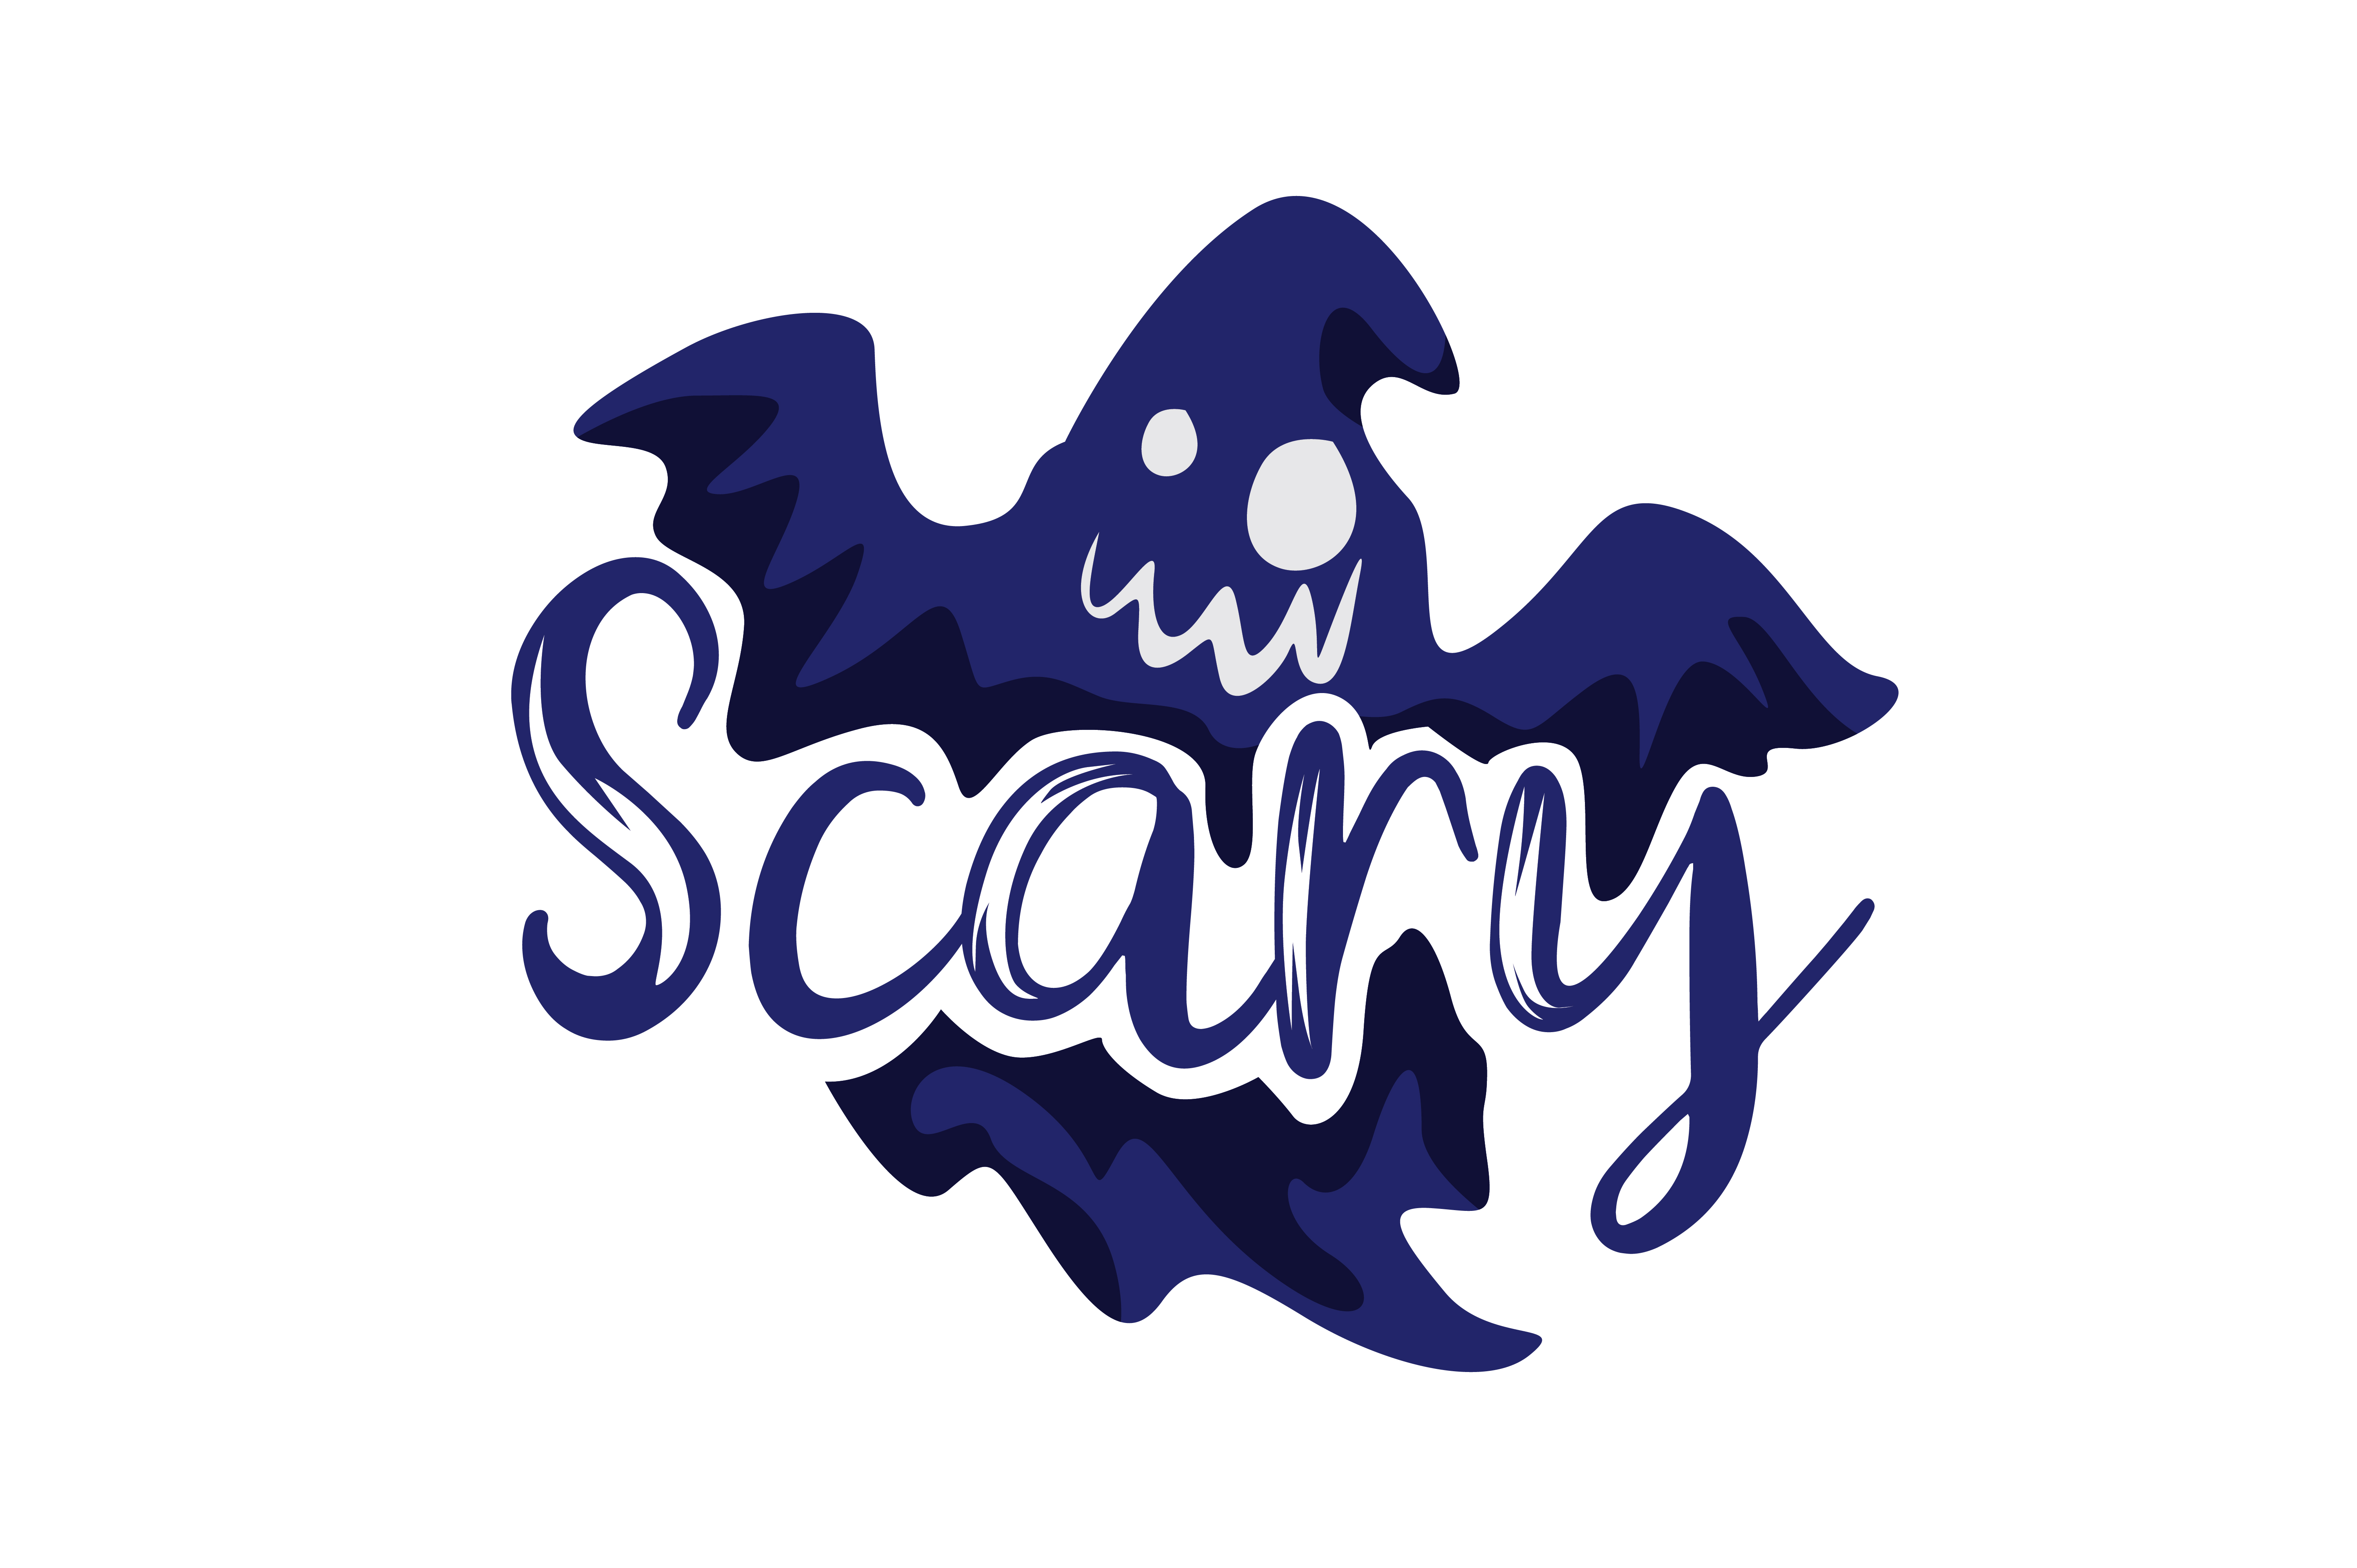 Download Free Scary Graphic By Thelucky Creative Fabrica for Cricut Explore, Silhouette and other cutting machines.